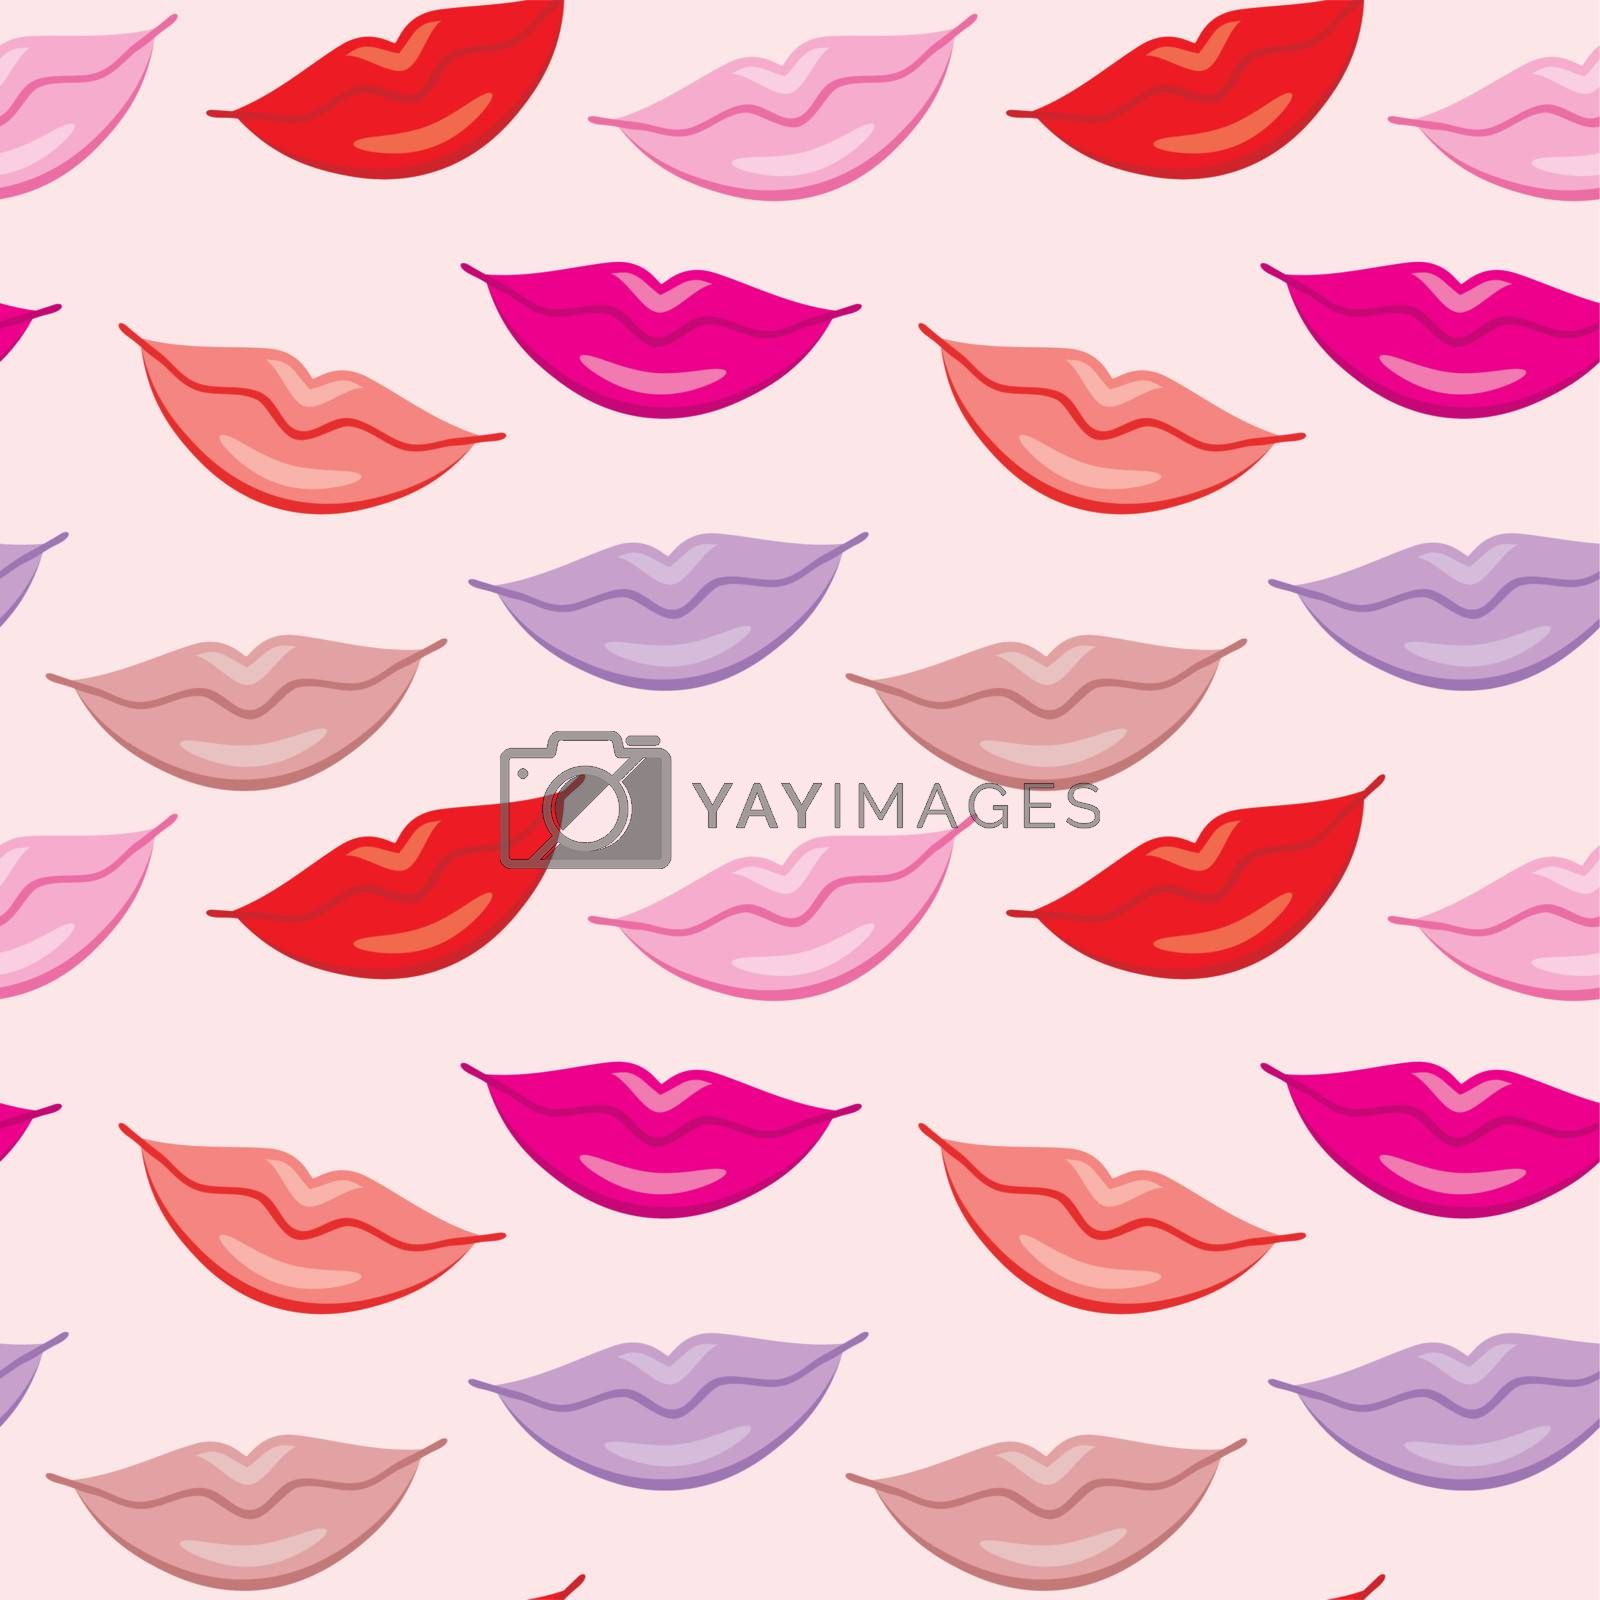 Image of seamless pattern with lips imprint Valentine's Day.